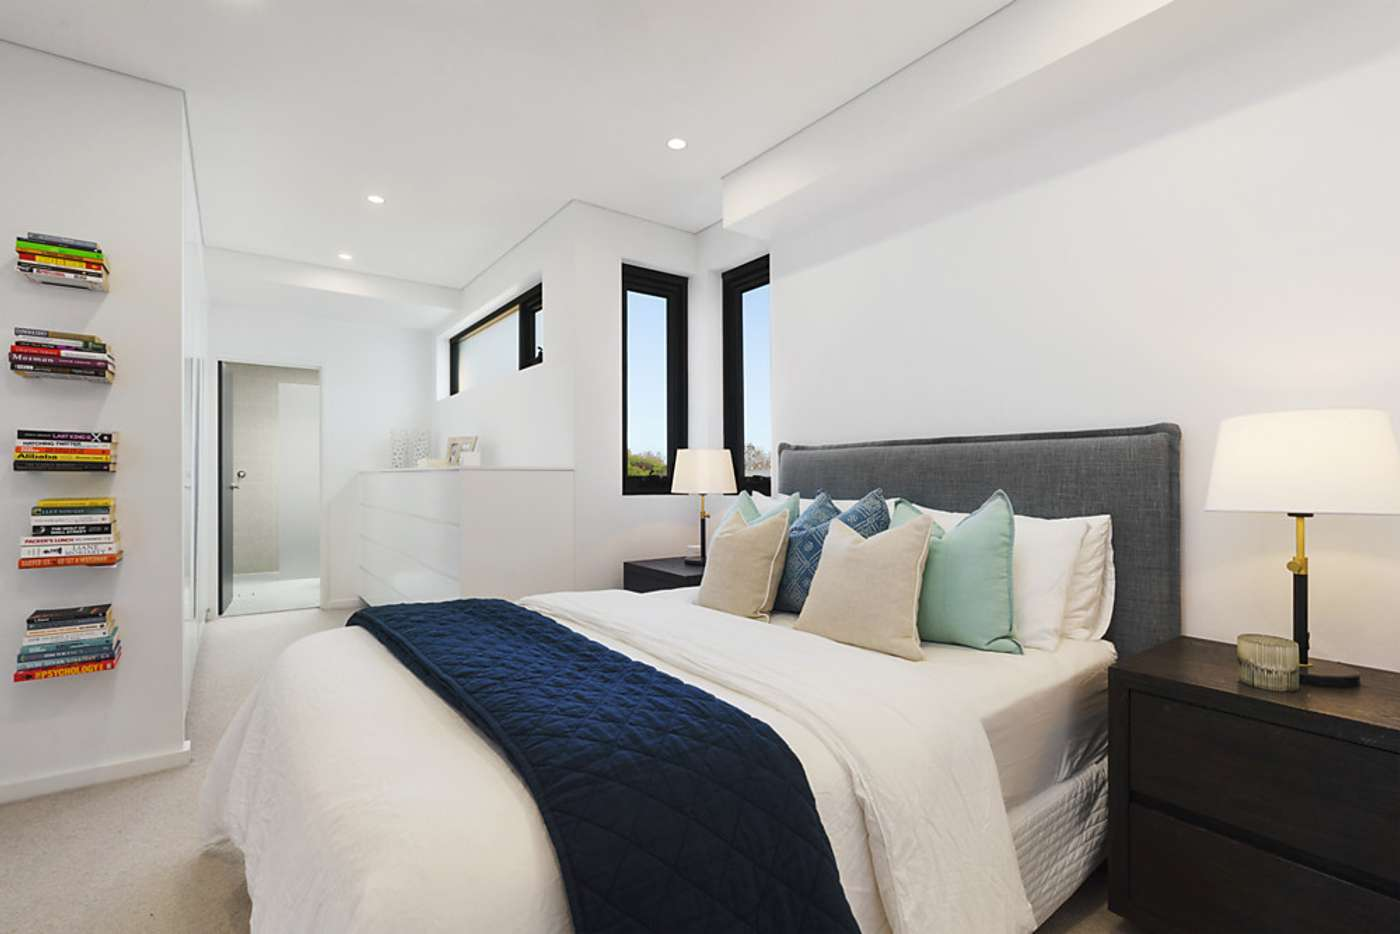 Sixth view of Homely apartment listing, 305/23 Myrtle Street, North Sydney NSW 2060